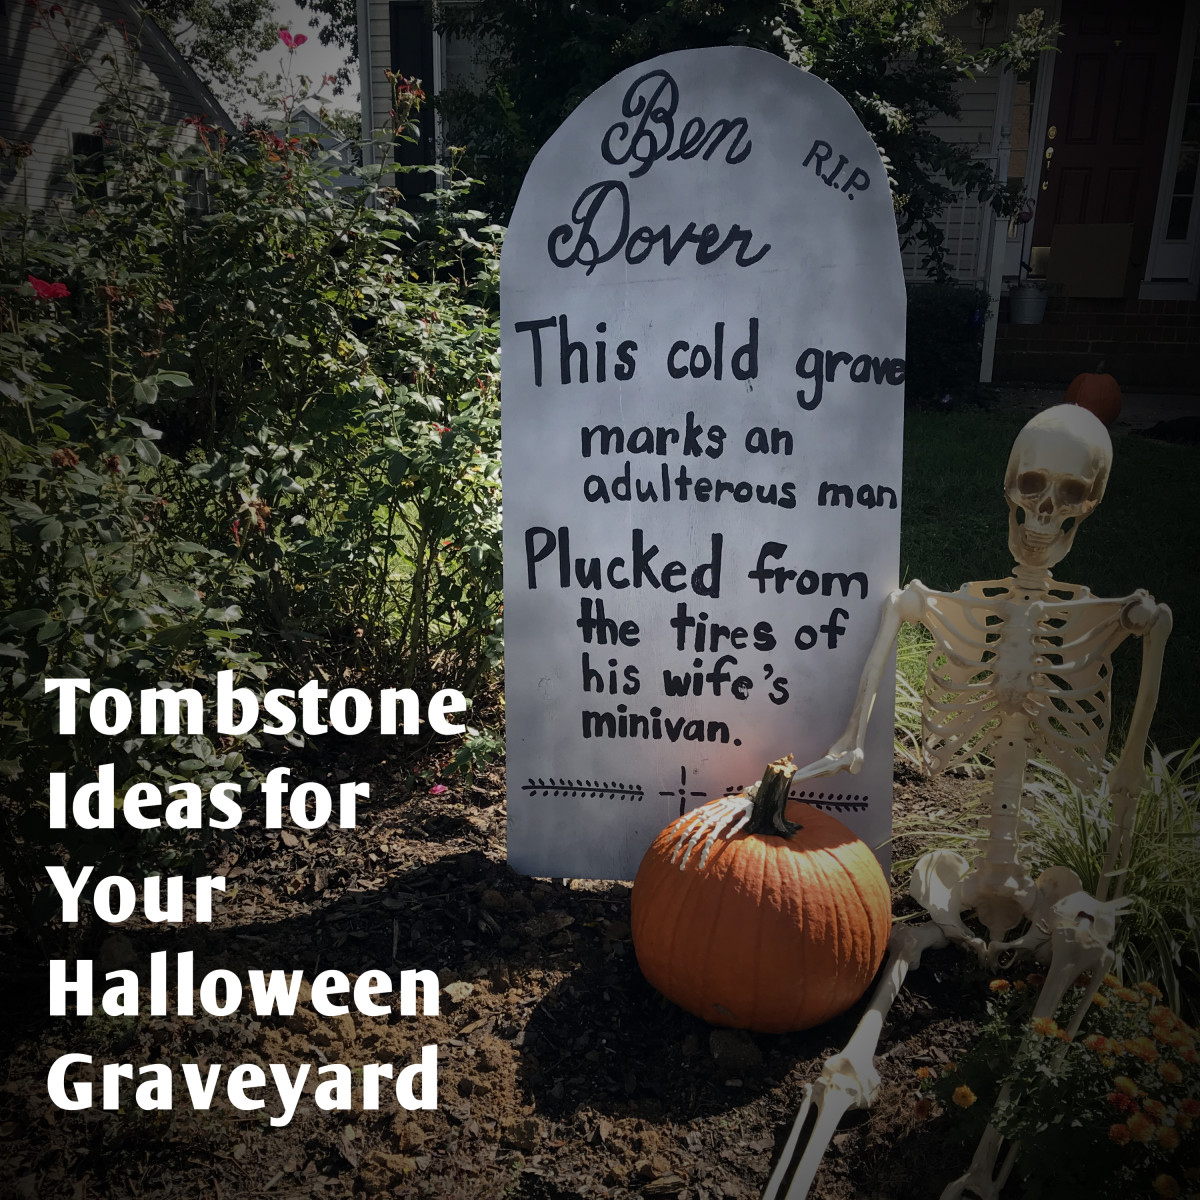 Tombstone Ideas for Your Halloween Graveyard